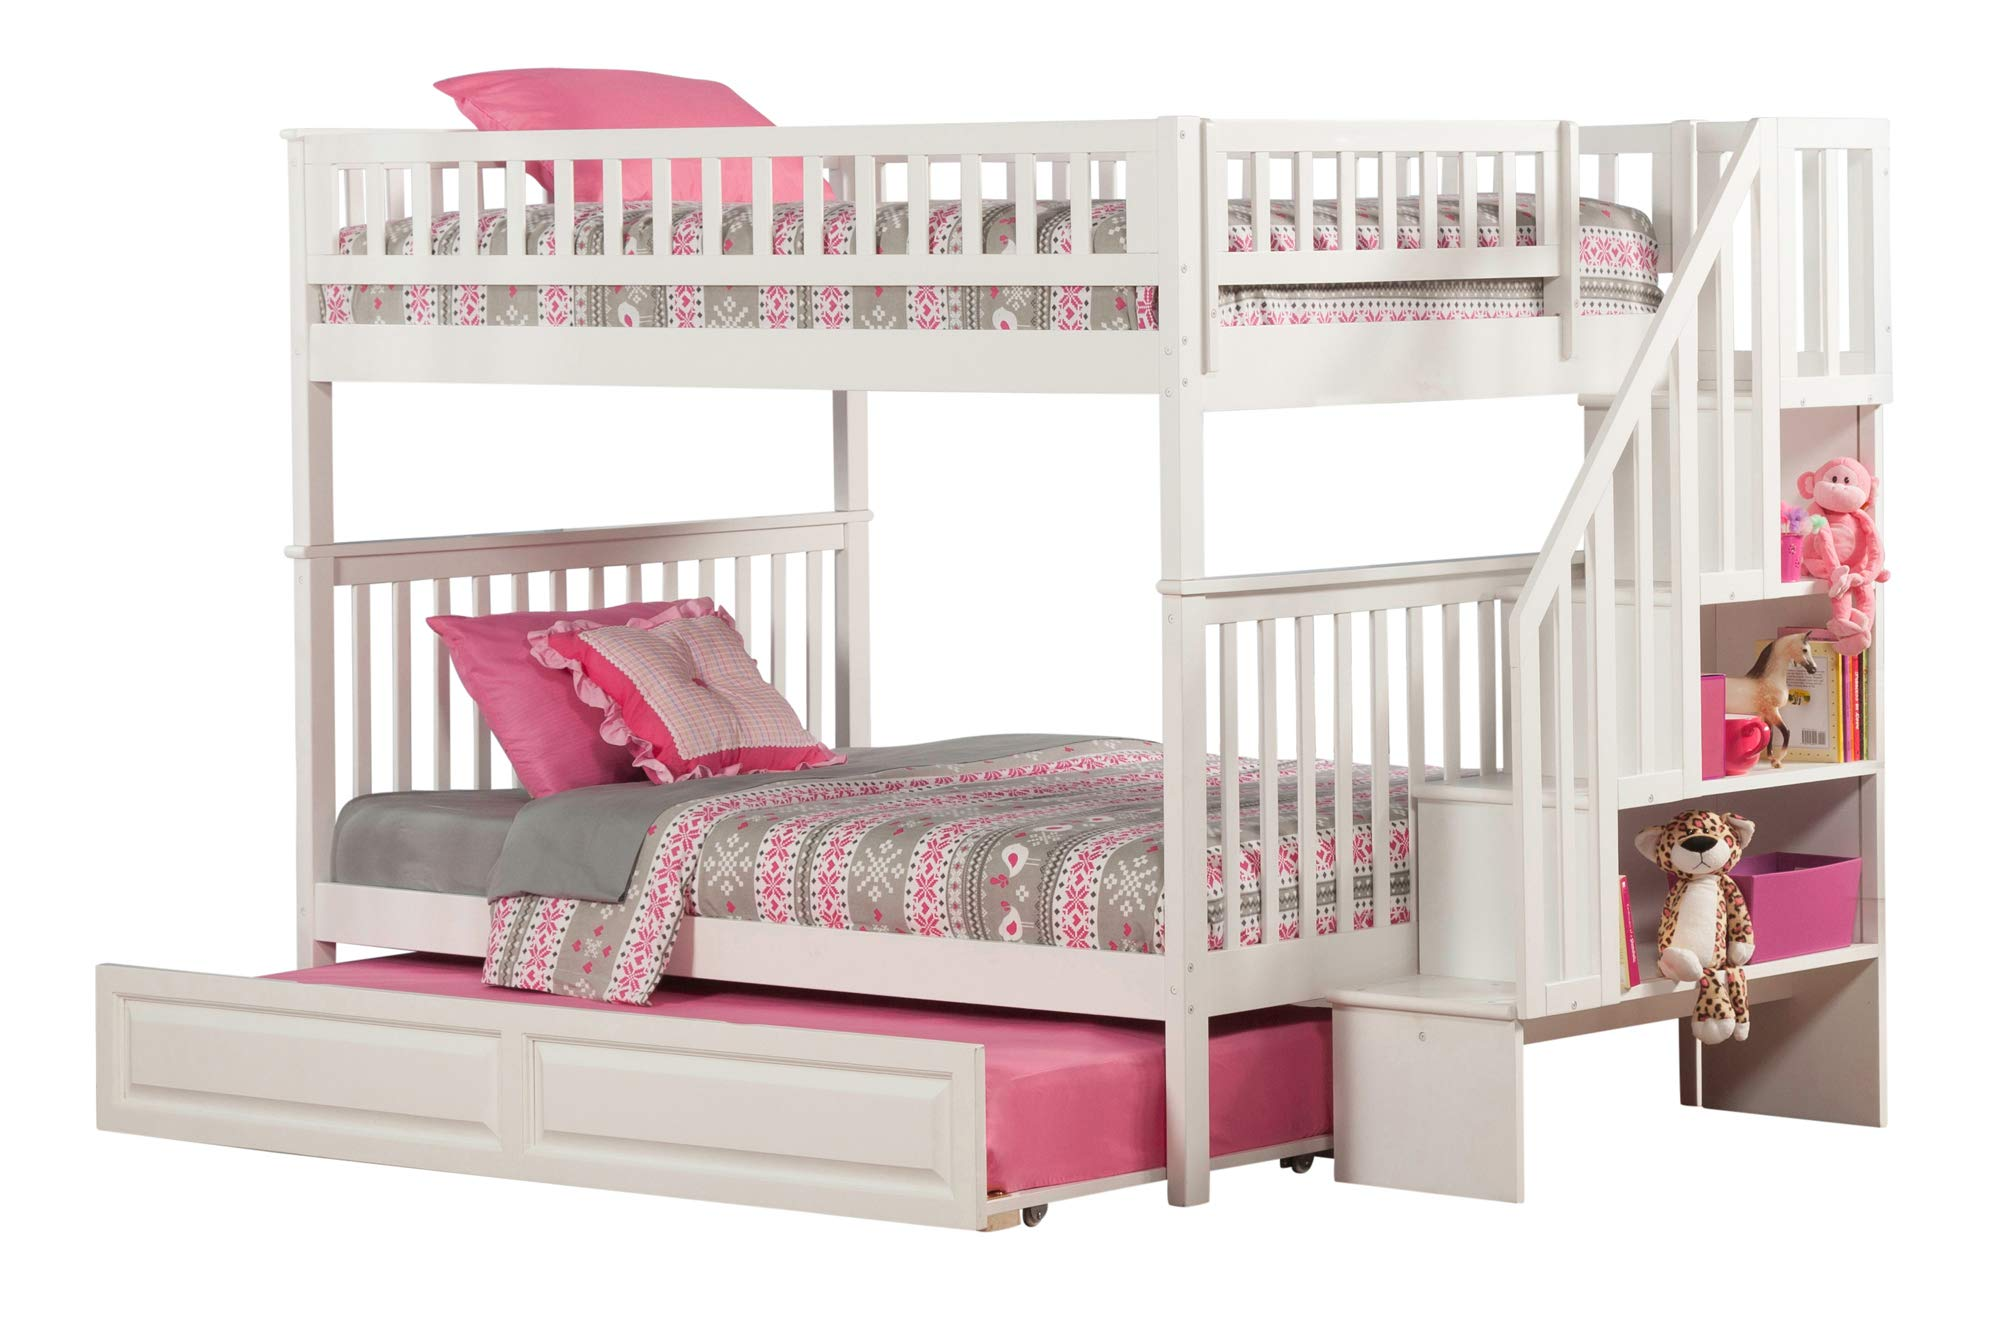 Atlantic Furniture Woodland - Litera para Escalera con Cama Nido: Amazon.es: Juguetes y juegos